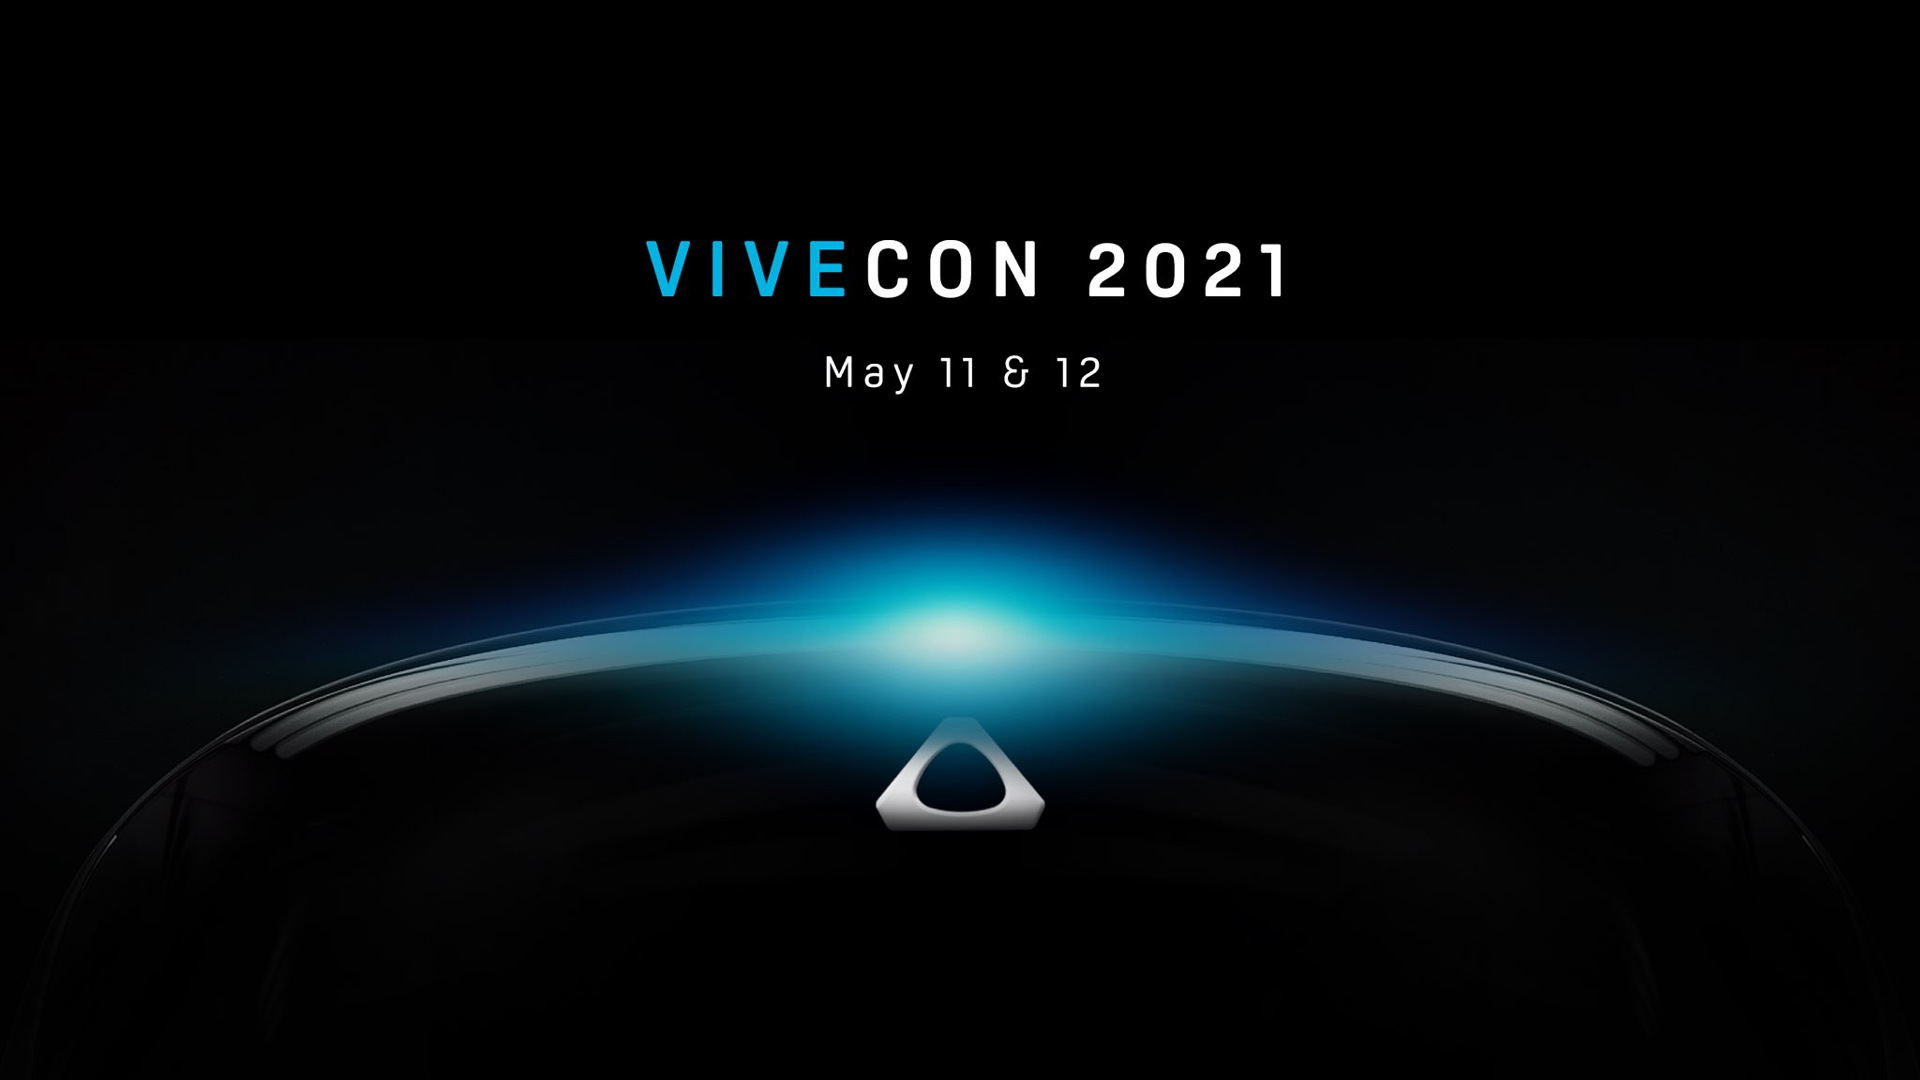 Report: HTC to Announce Vive Focus 3 and Vive Pro 2 Next Week